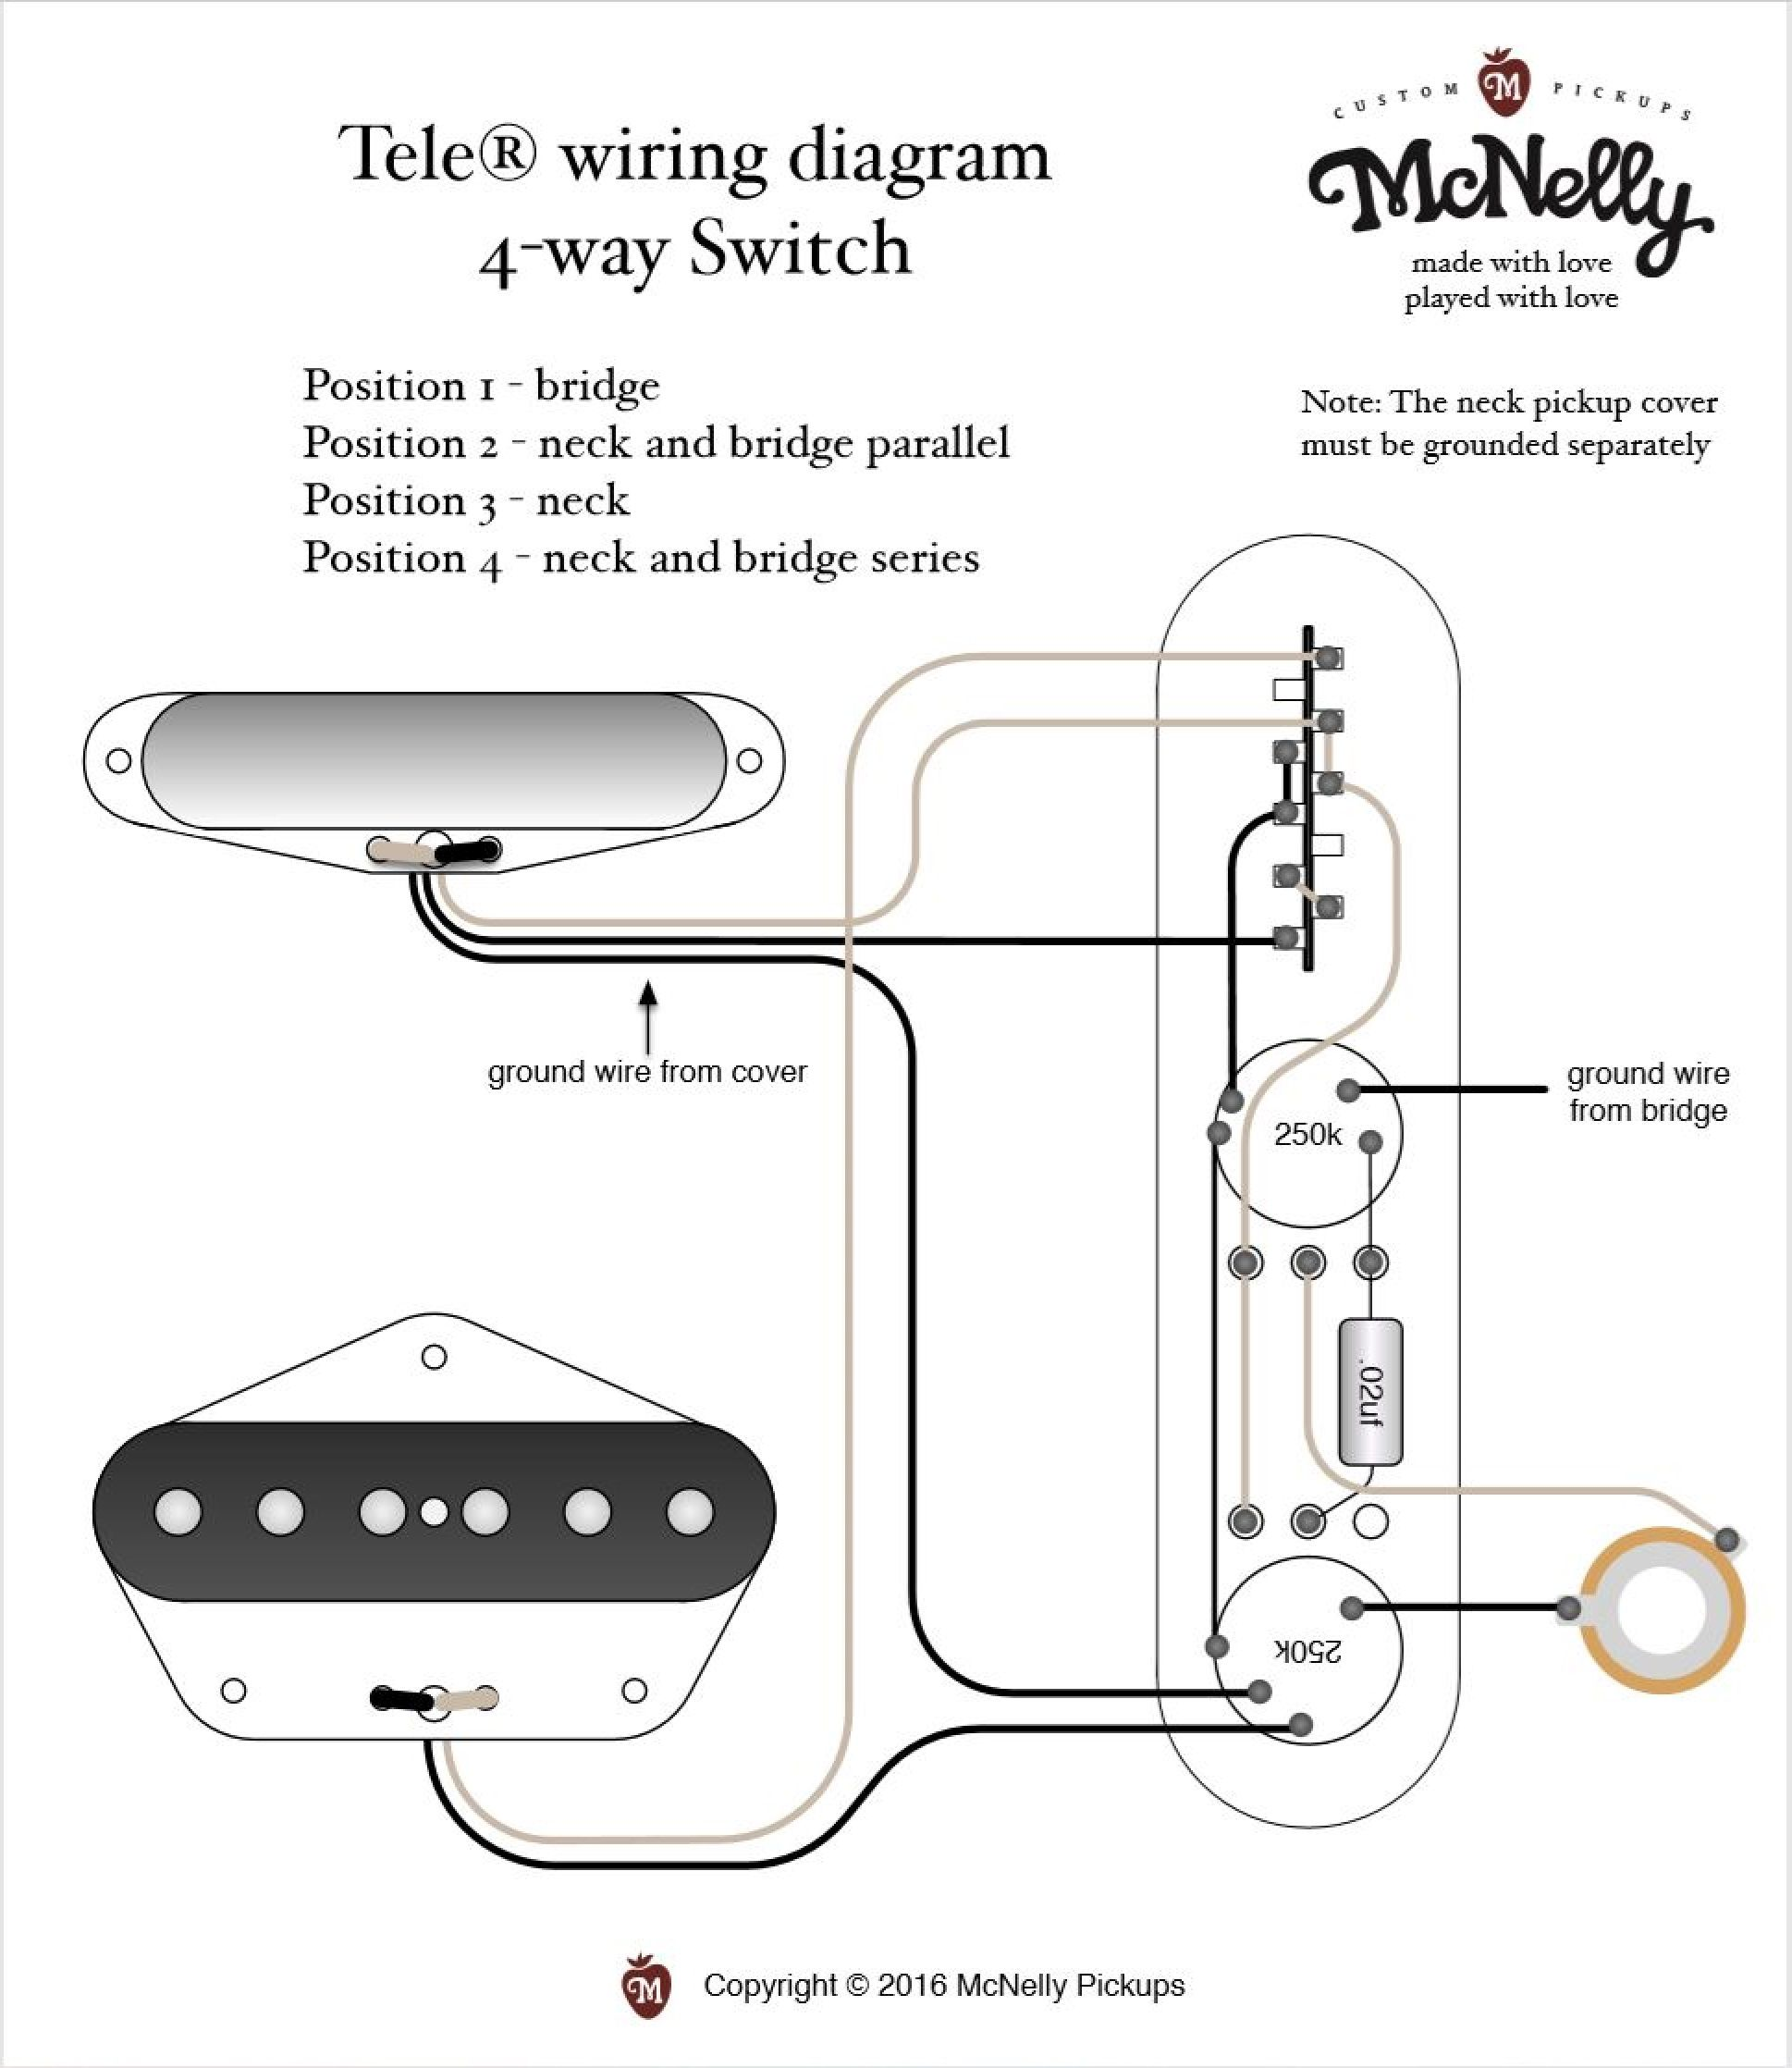 McNelly Pickups Tele® wiring diagram 4way Switch